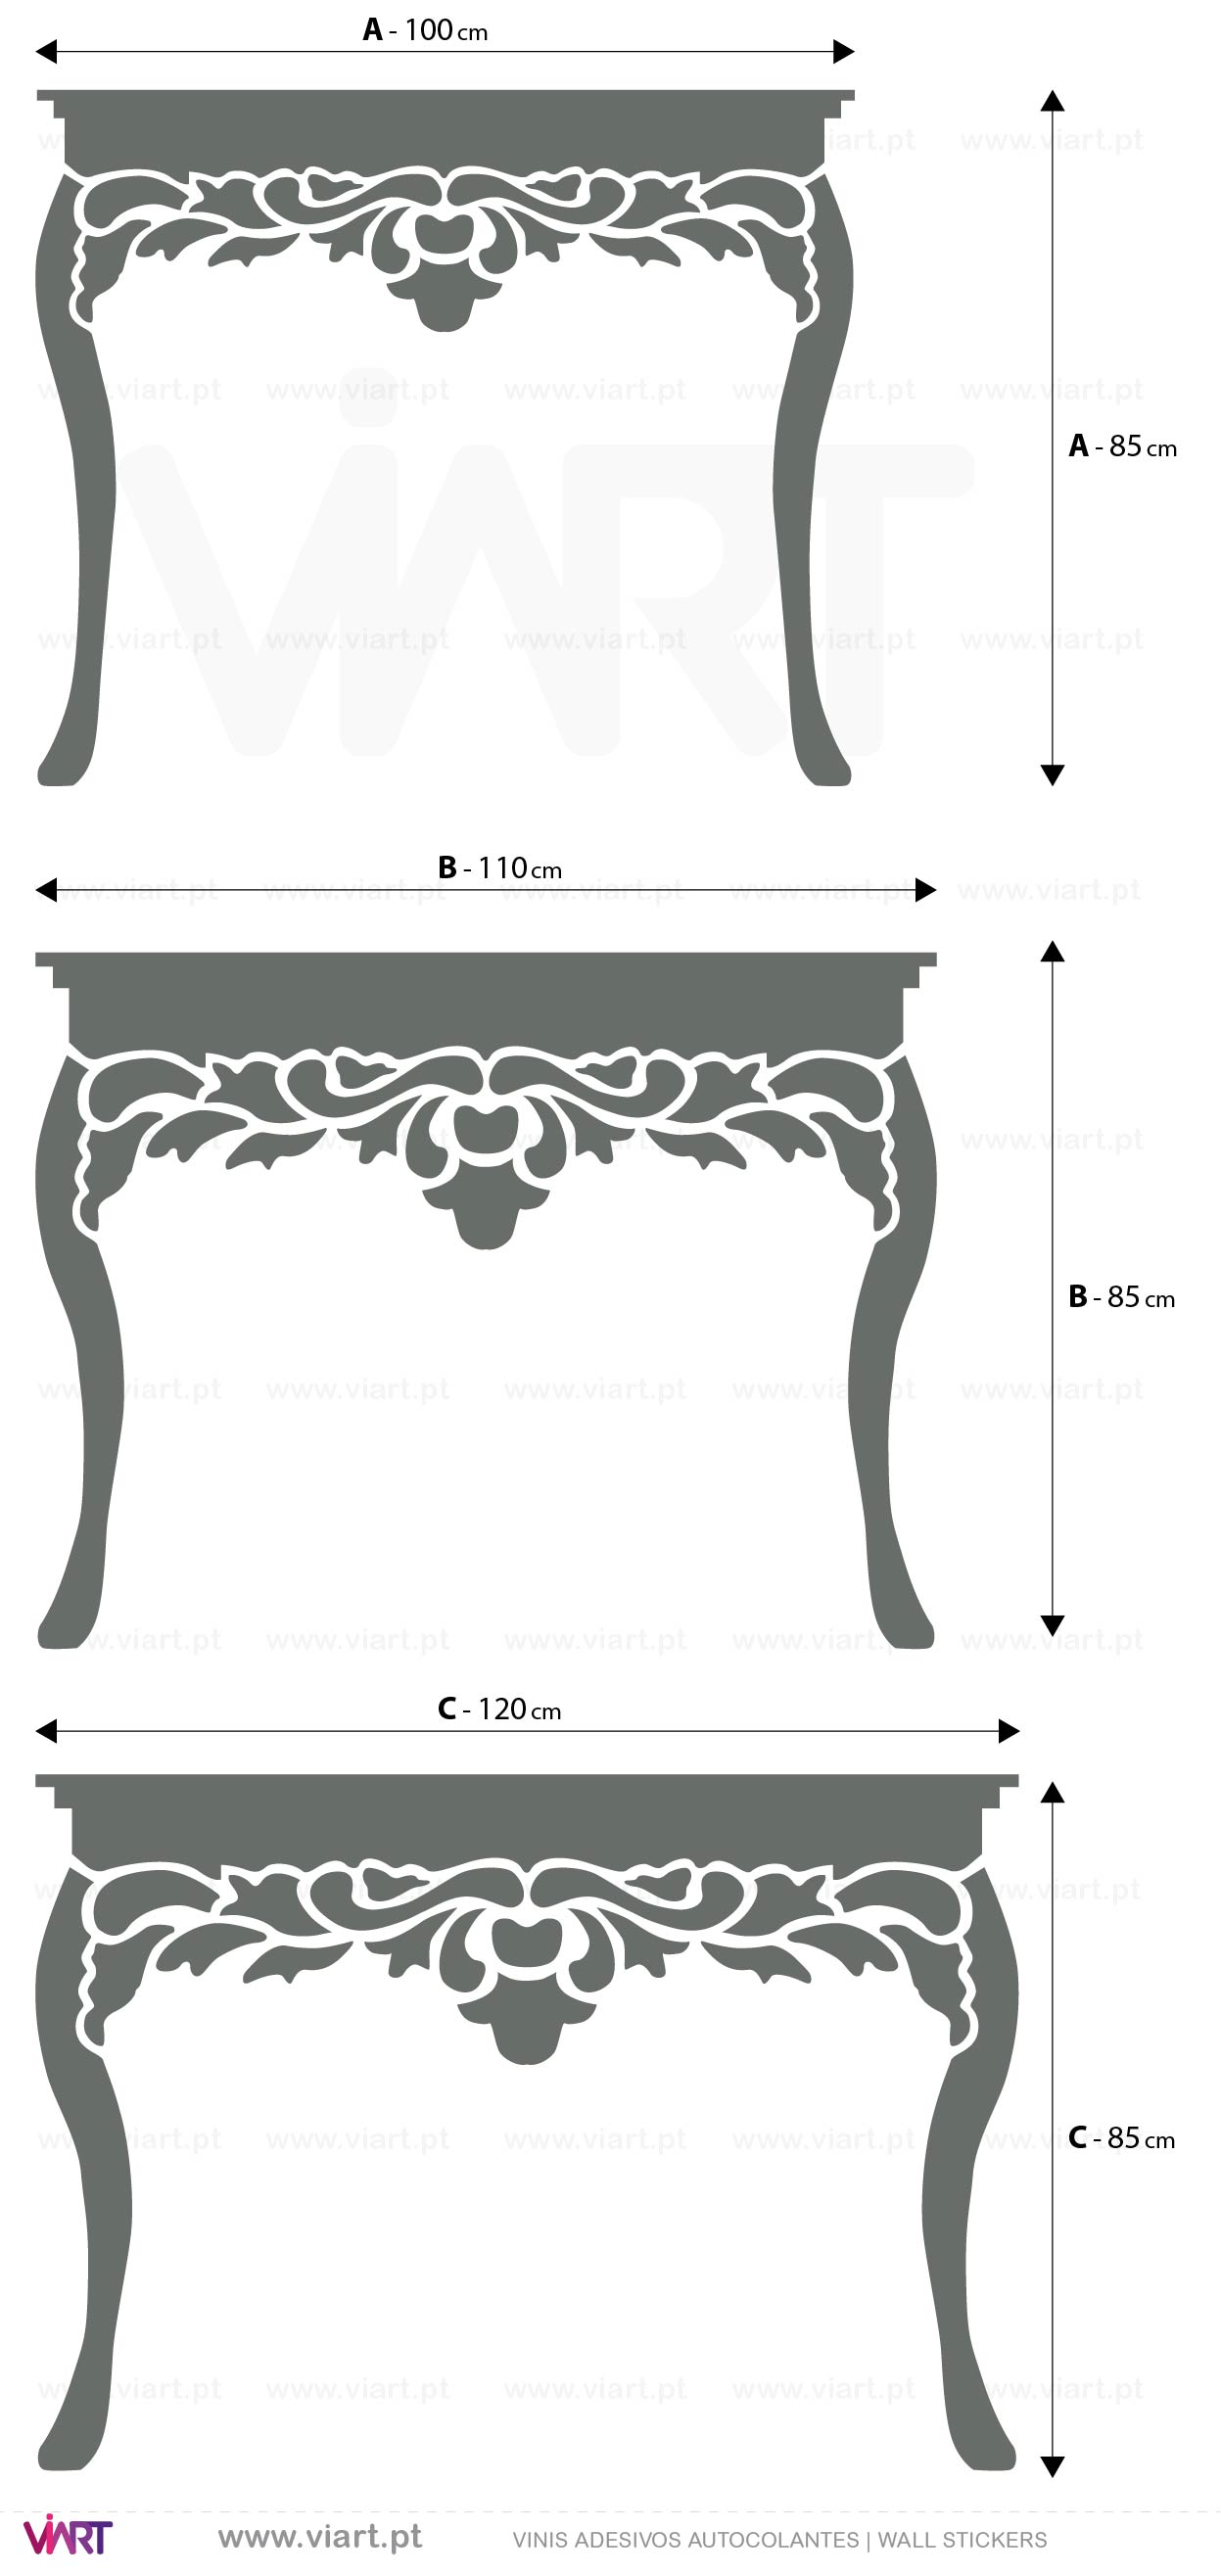 Viart - WALL STICKERS - Console Tables | Hall Table! Decal Measures